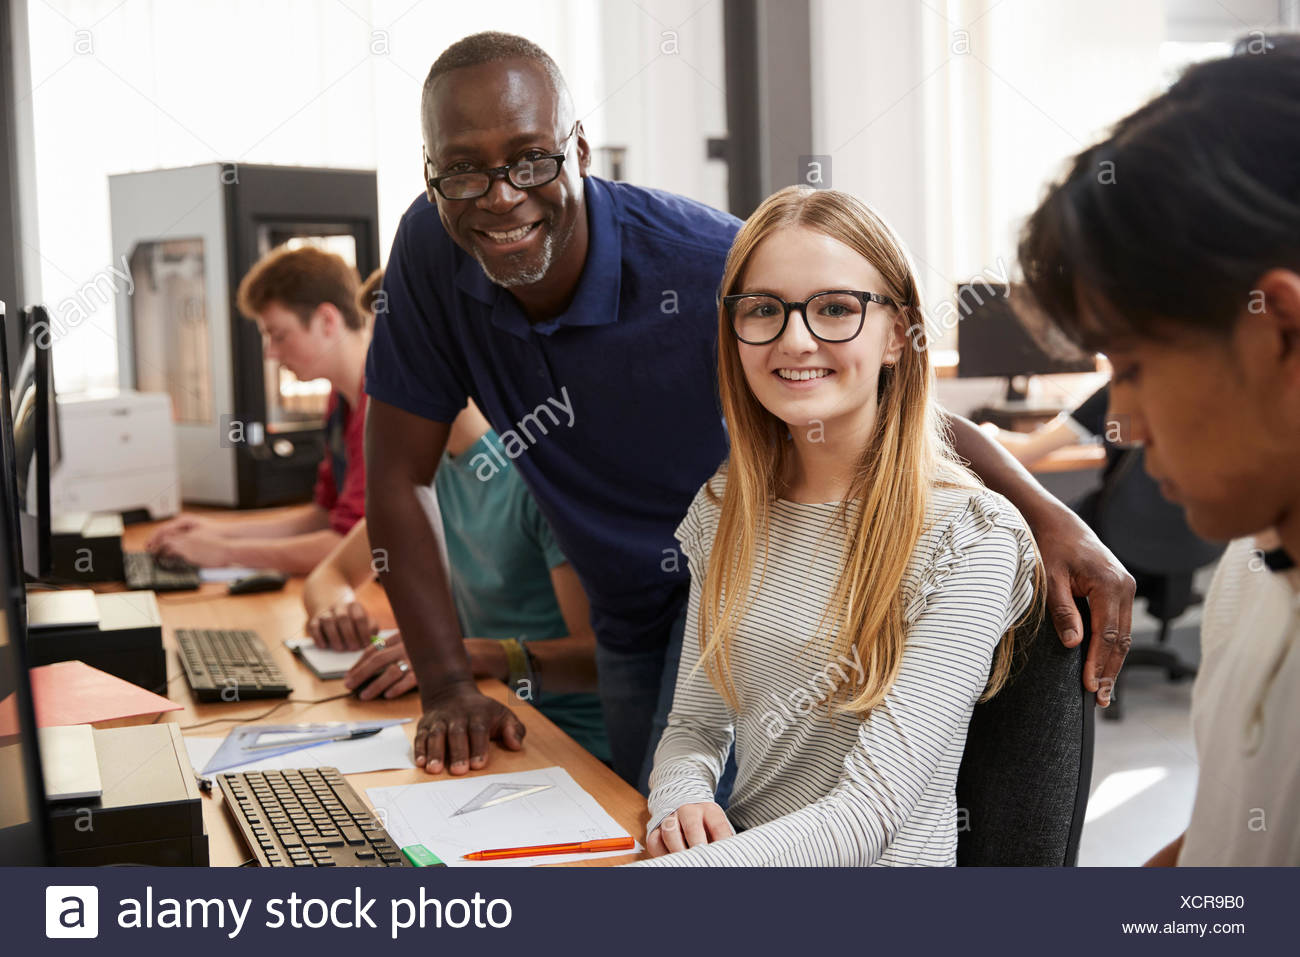 Portrait Of Design Student With Teacher Studying CAD/3D Printing - Stock Image